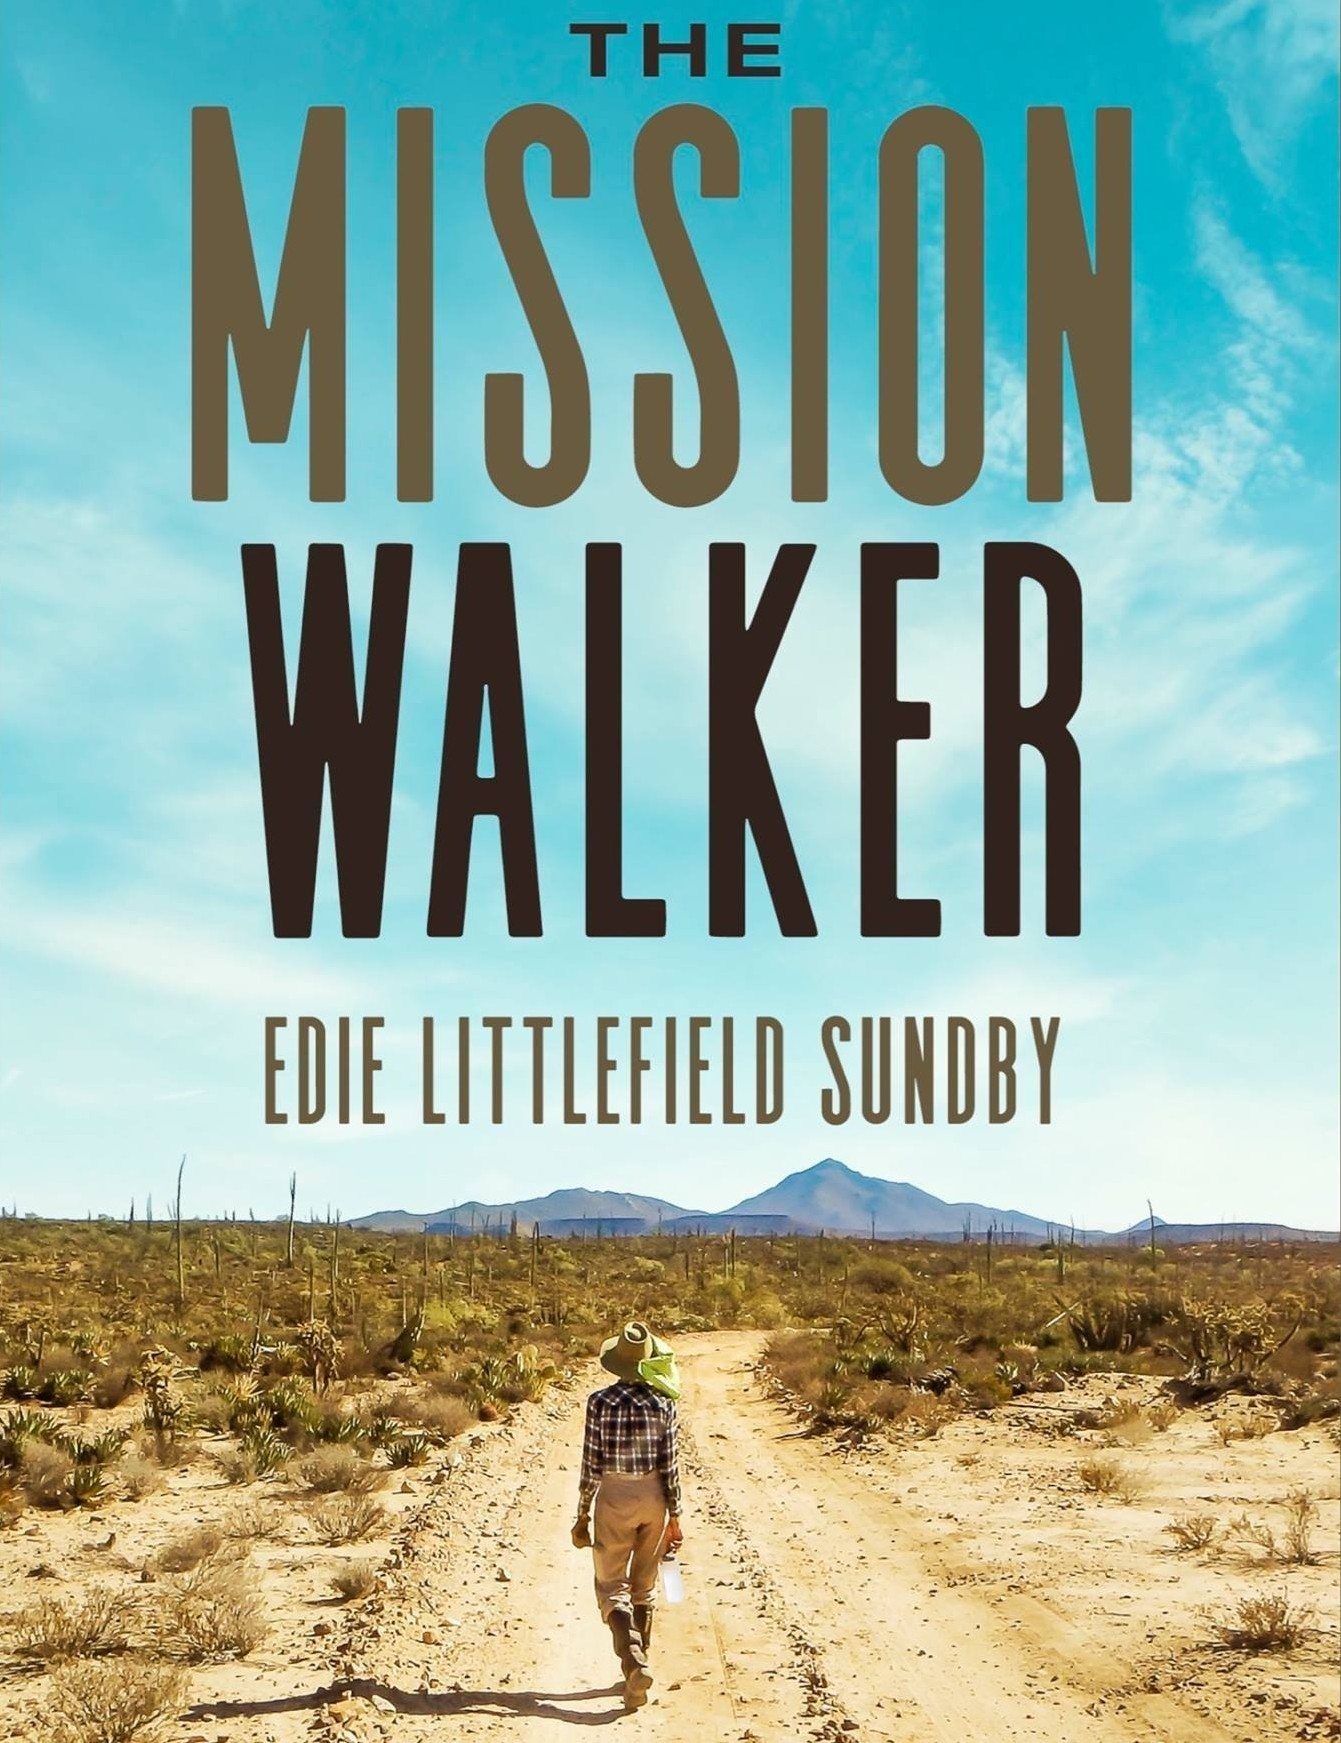 The cover of Edith Littlefield Sundby's 2017 book, published by Harper Collins.